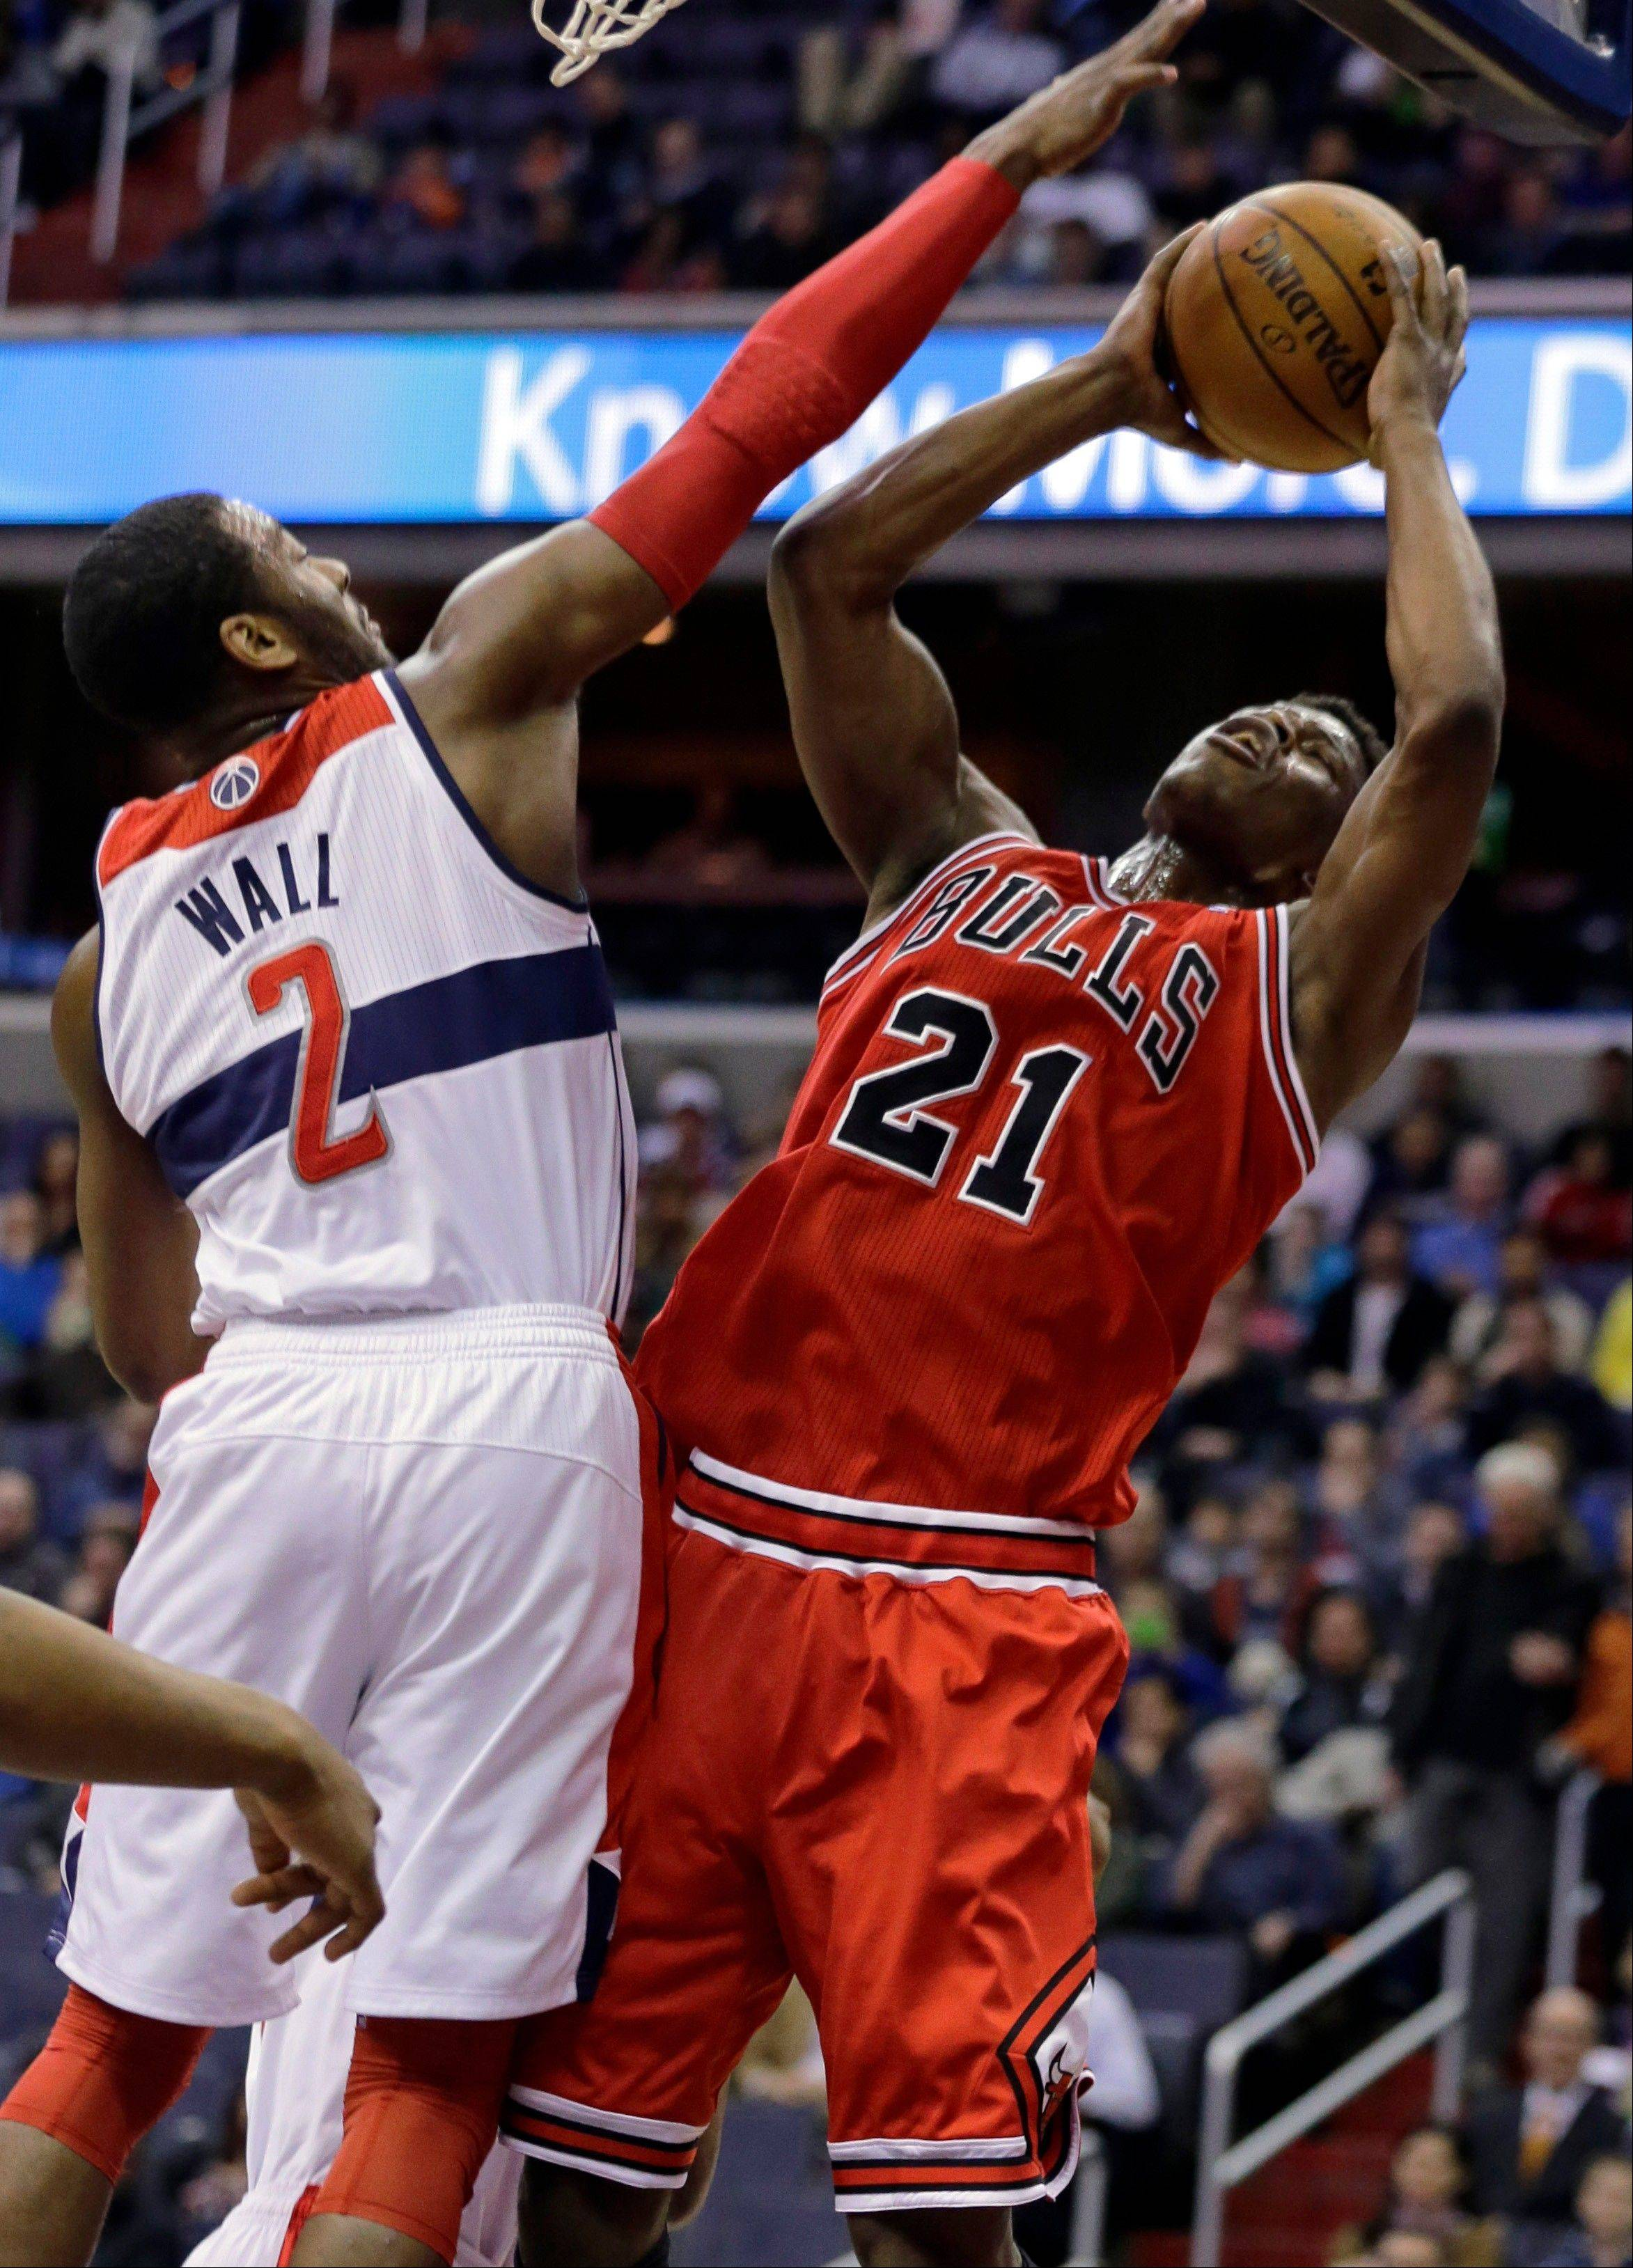 Chicago Bulls forward Jimmy Butler (21) shoots in front of Washington Wizards guard John Wall (2) in the first half of an NBA basketball game Tuesday, April 2, 2013, in Washington.